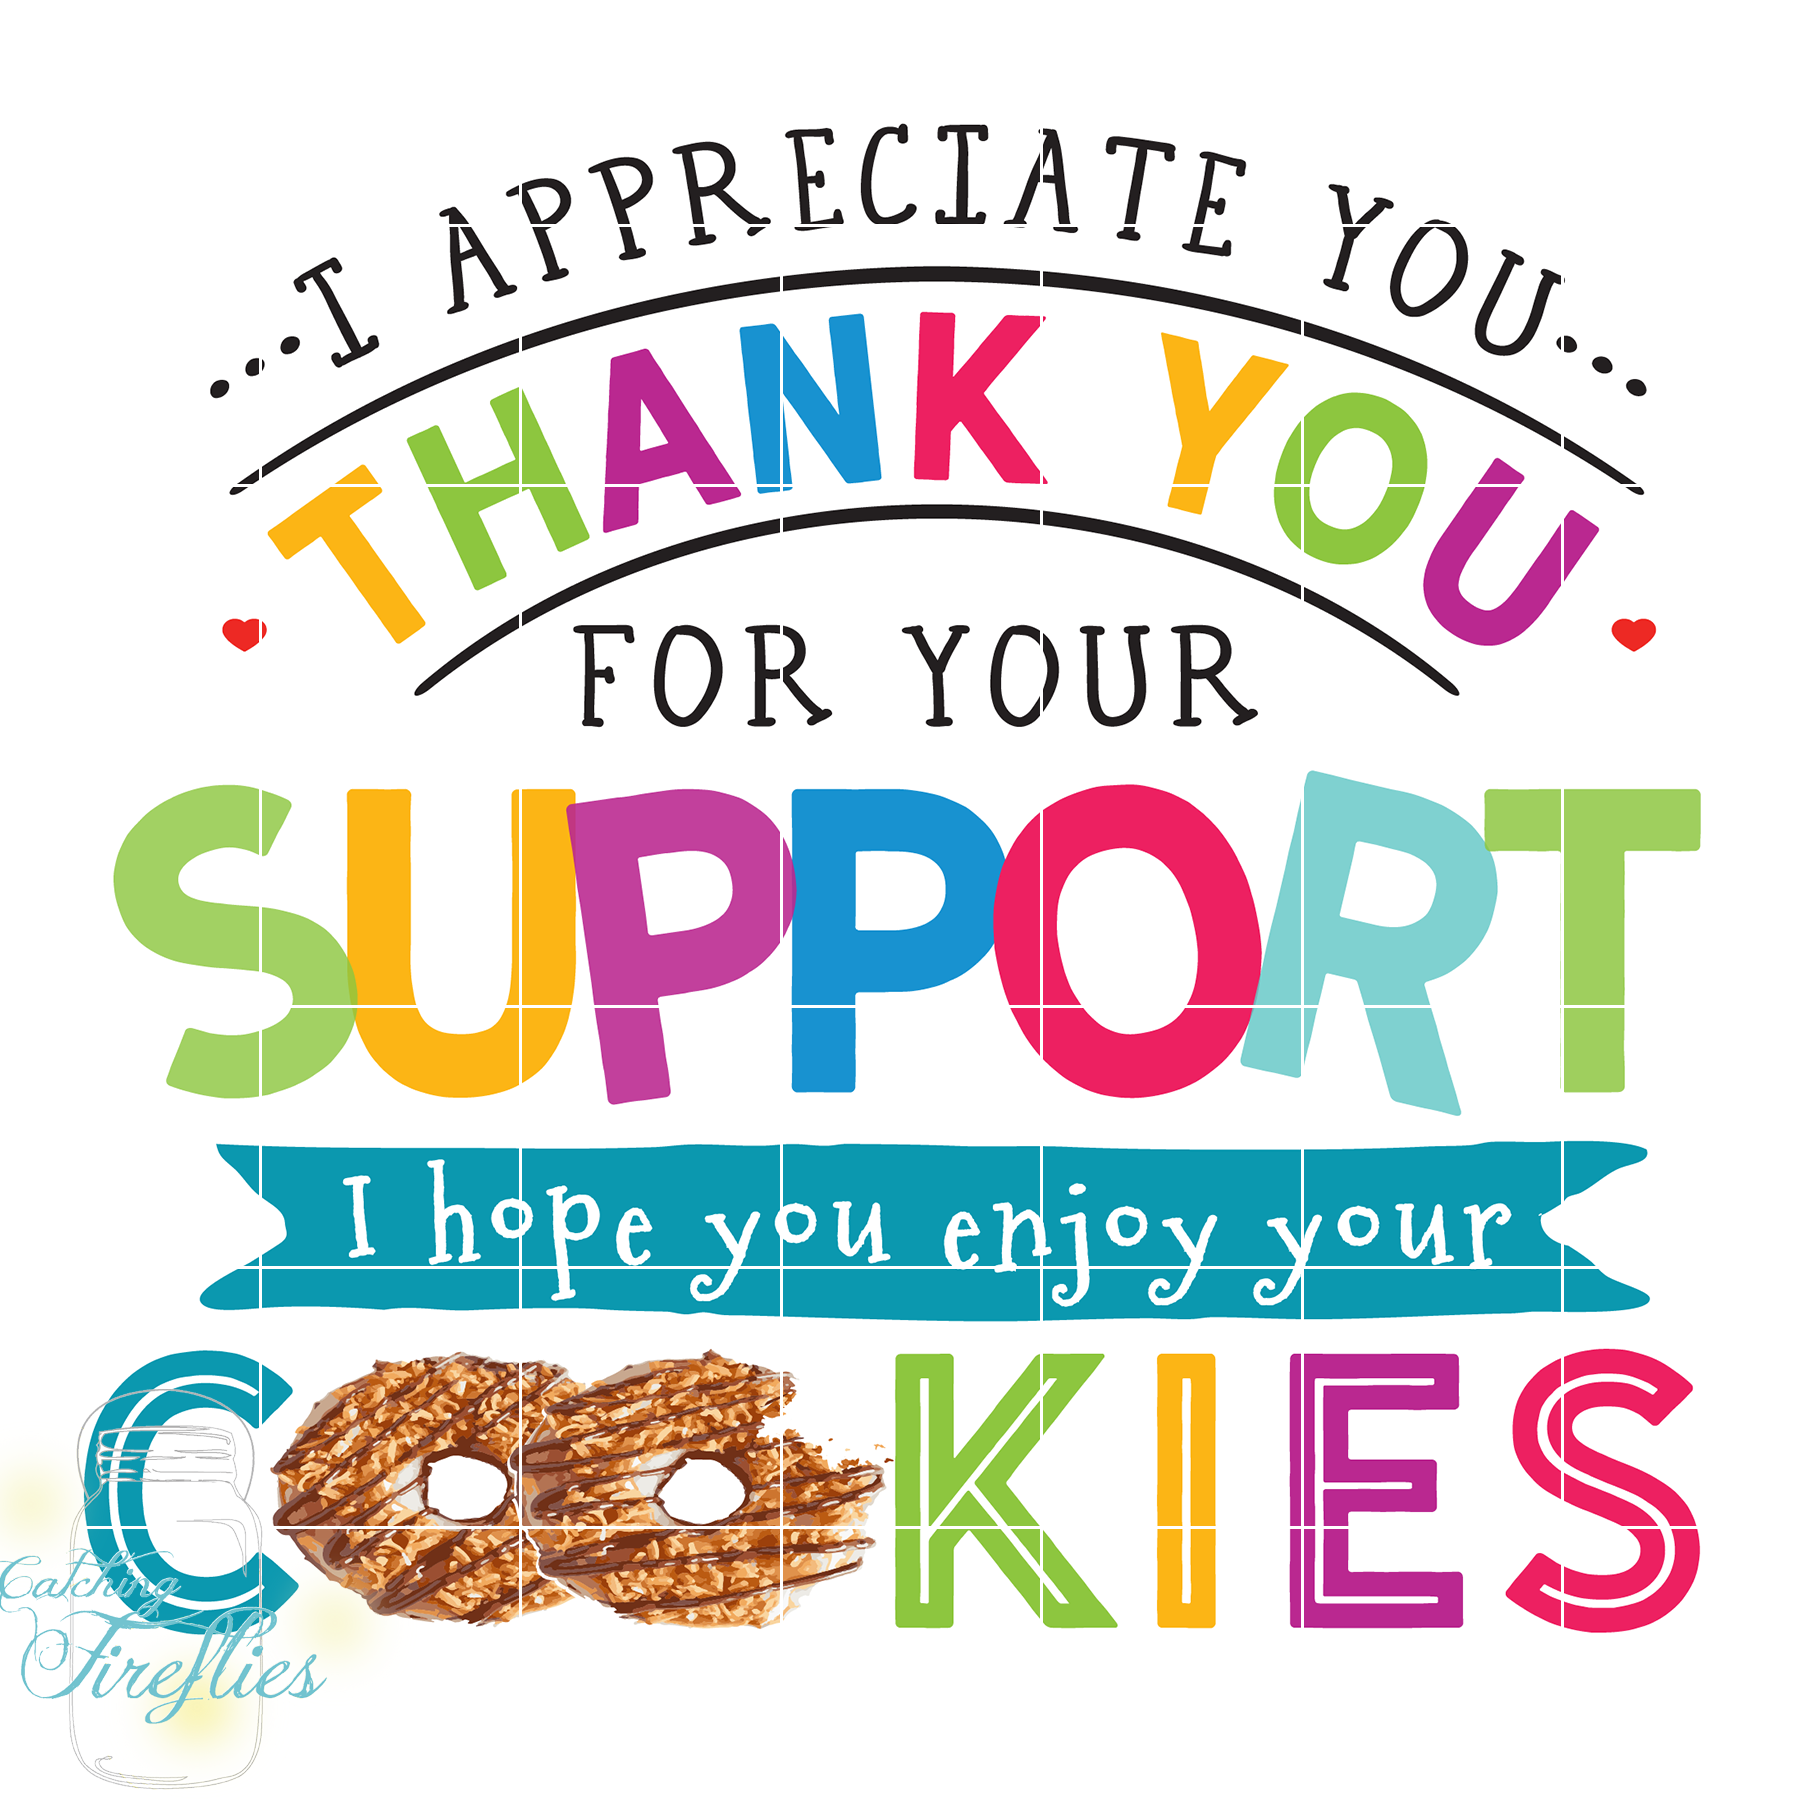 Girl scout cookie sale clipart clip royalty free Girl Scout Cookie CLIP ART ABC, 2019 Cookie + Donate to the Troops ... clip royalty free